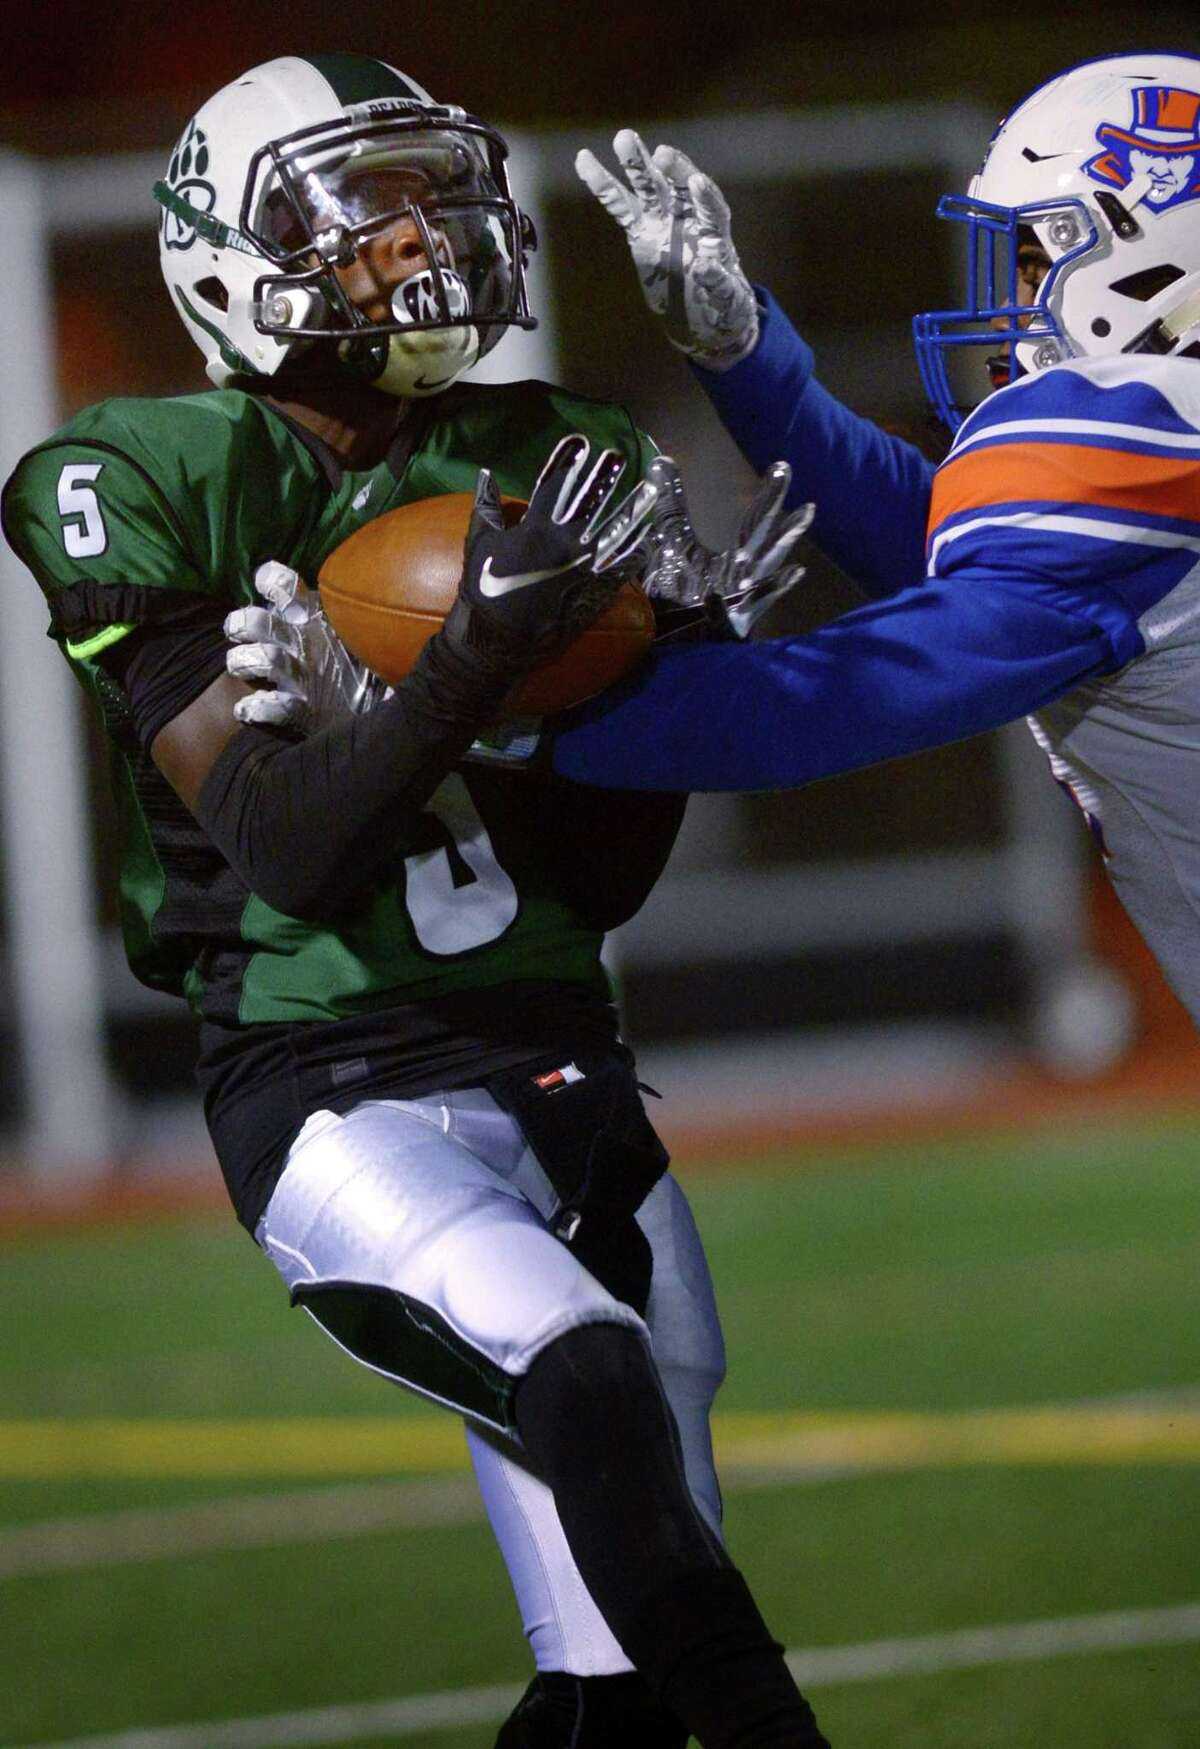 Bears #5 Jaki Elliott comes down with a long pass as the Norwalk High School Bears take on the Danbury High School Hatters during their FCIAC football game Friday, October 26, 2018, in Norwalk, Conn.